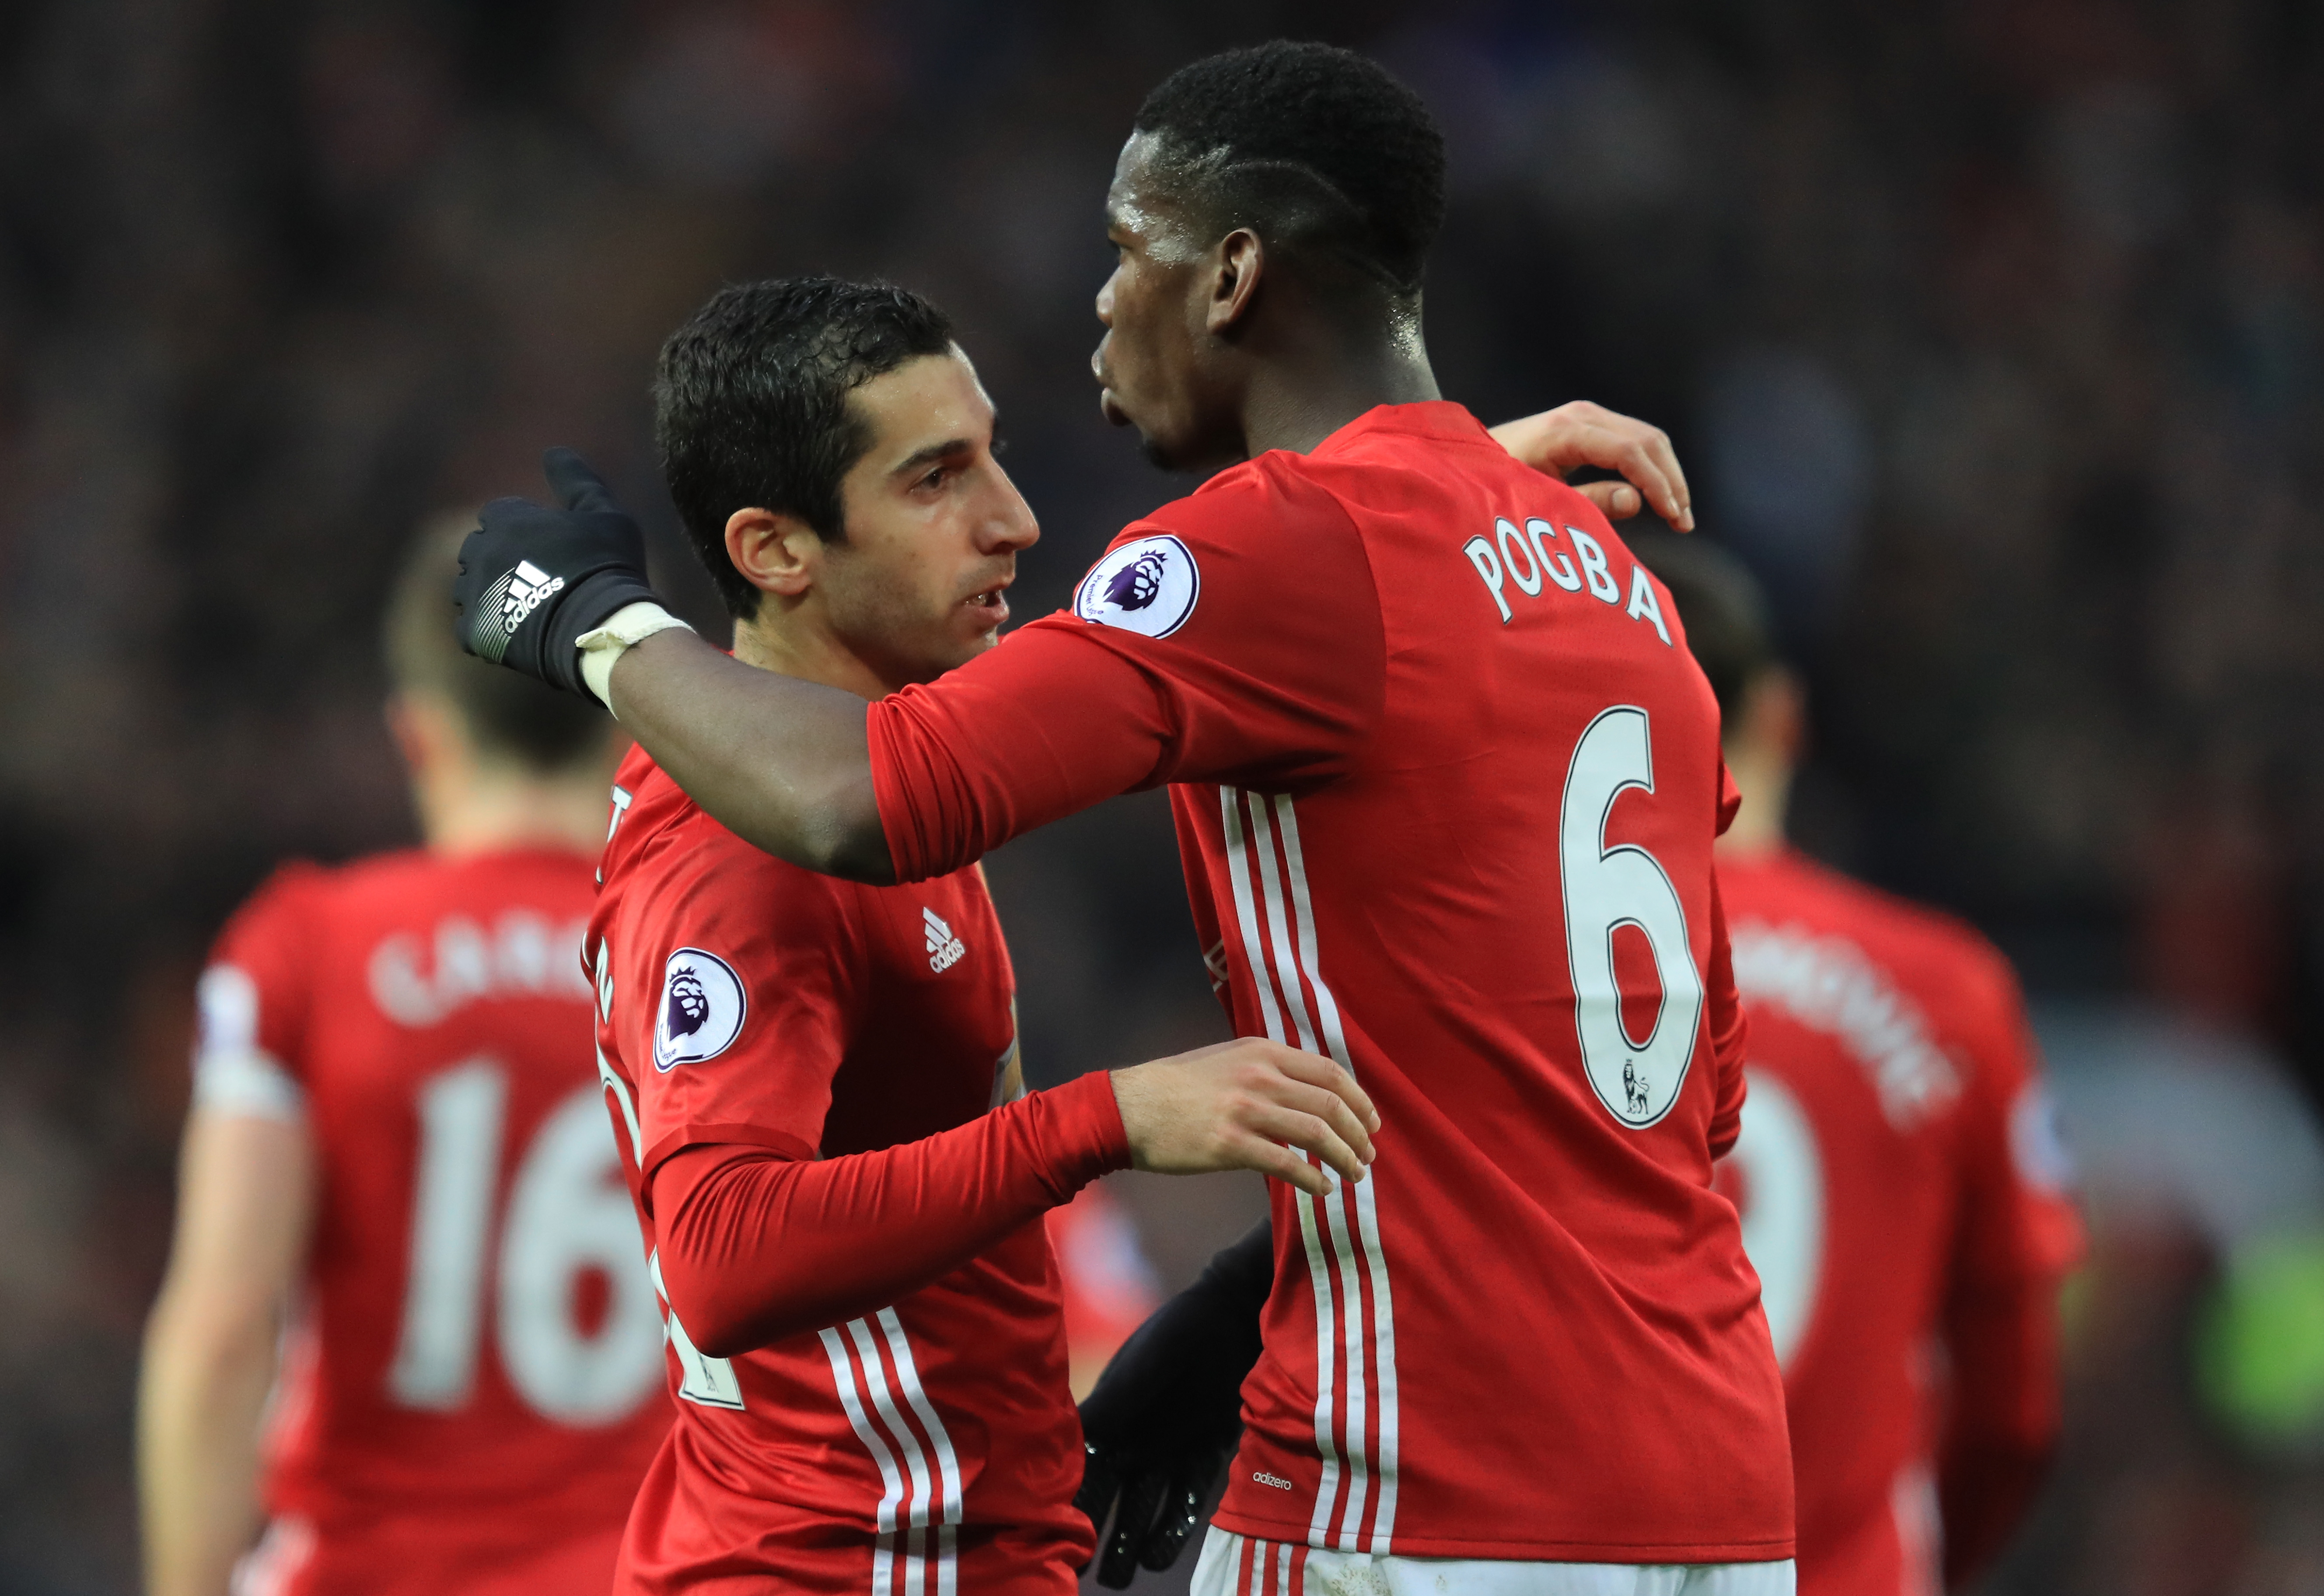 MANCHESTER, ENGLAND - DECEMBER 11:  Henrikh Mkhitaryan (L) of Manchester United celebrates scoring the opening goal with his team mate Paul Pogba (R) during the Premier League match between Manchester United and Tottenham Hotspur at Old Trafford on December 11, 2016 in Manchester, England.  (Photo by Richard Heathcote/Getty Images)